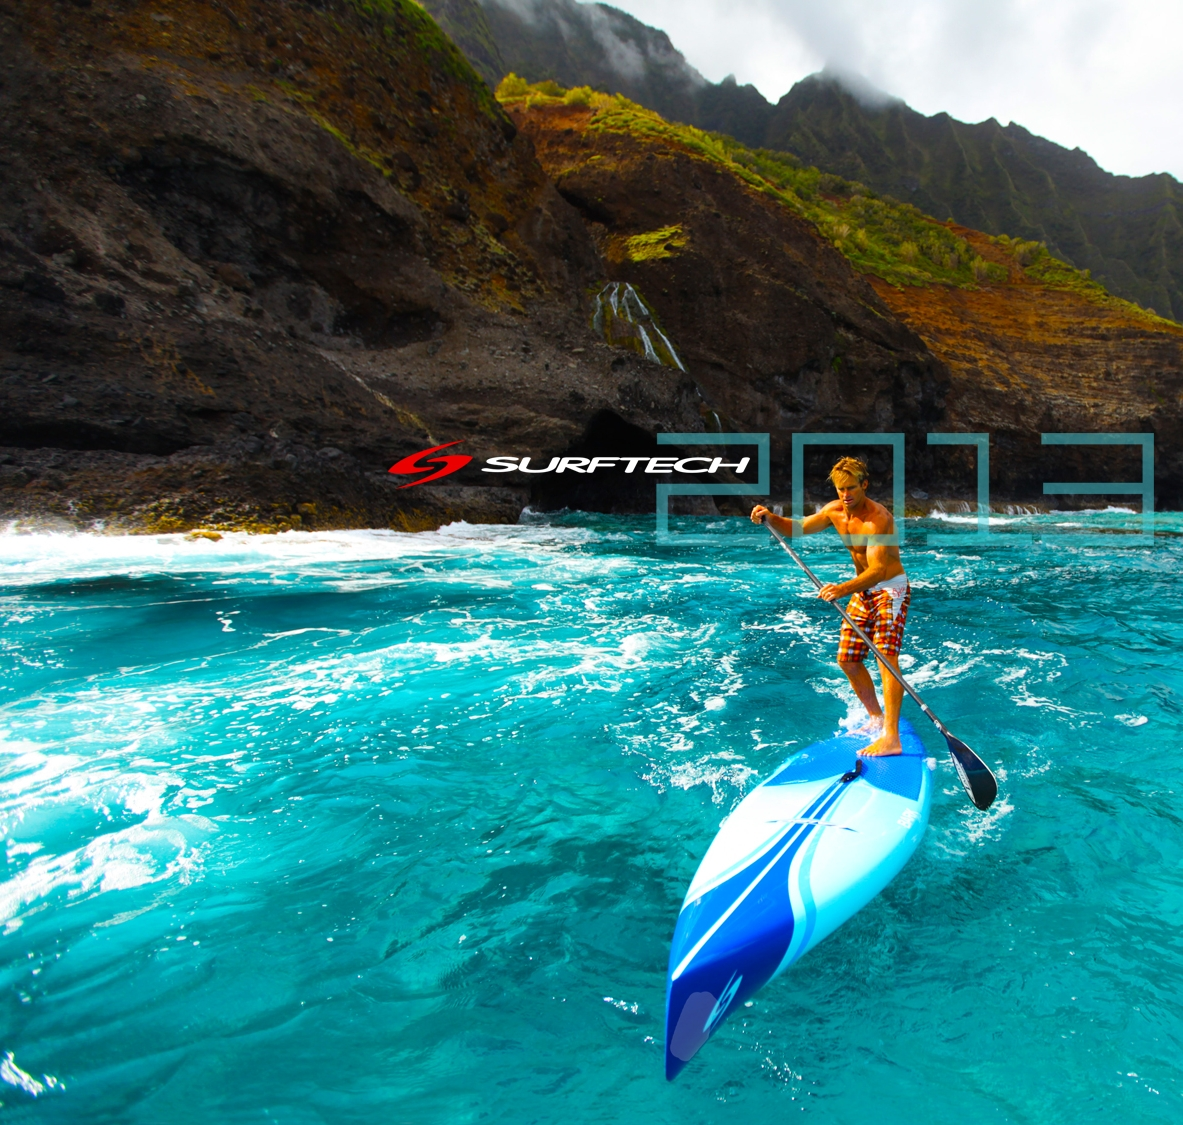 SURFTECH-2013-SUP copy.jpg